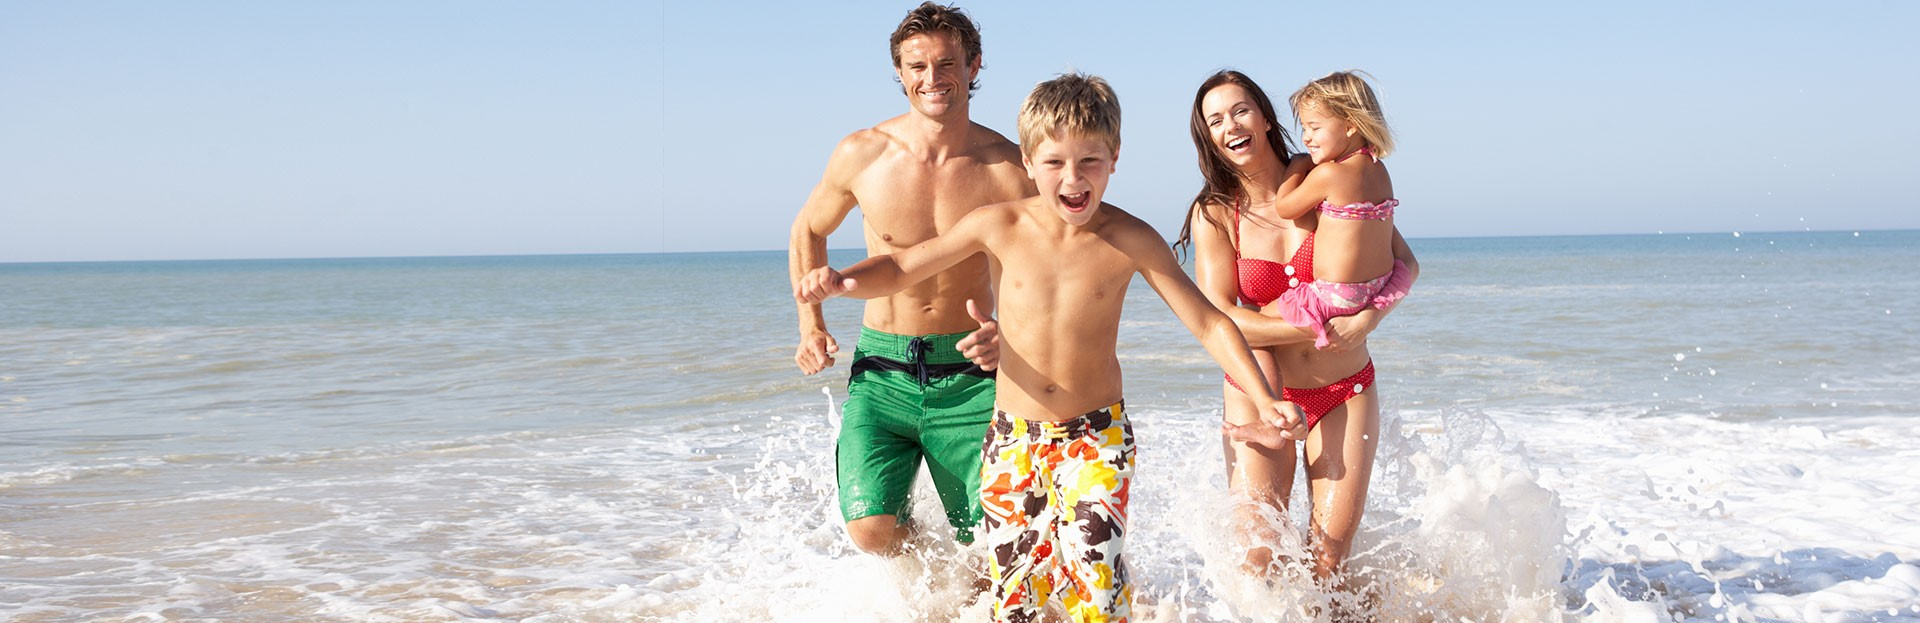 Family Vacations at the Beach from Victoria